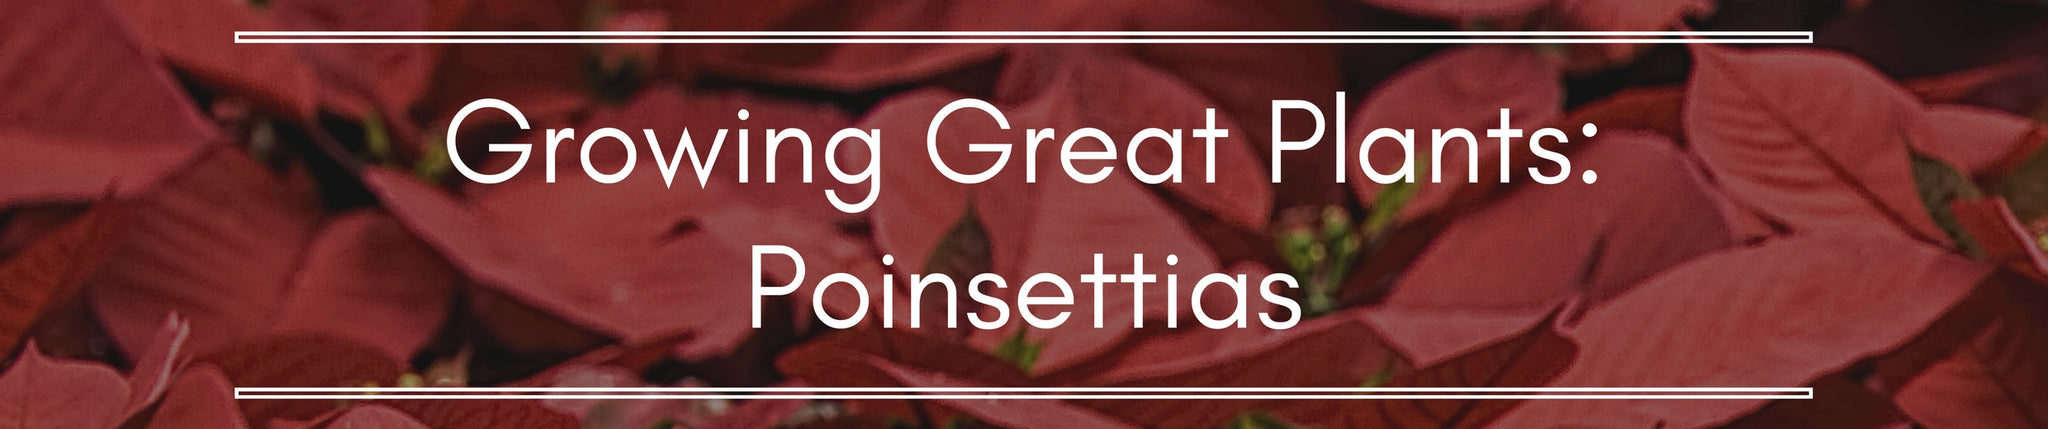 Growing Great Plants: Poinsettias